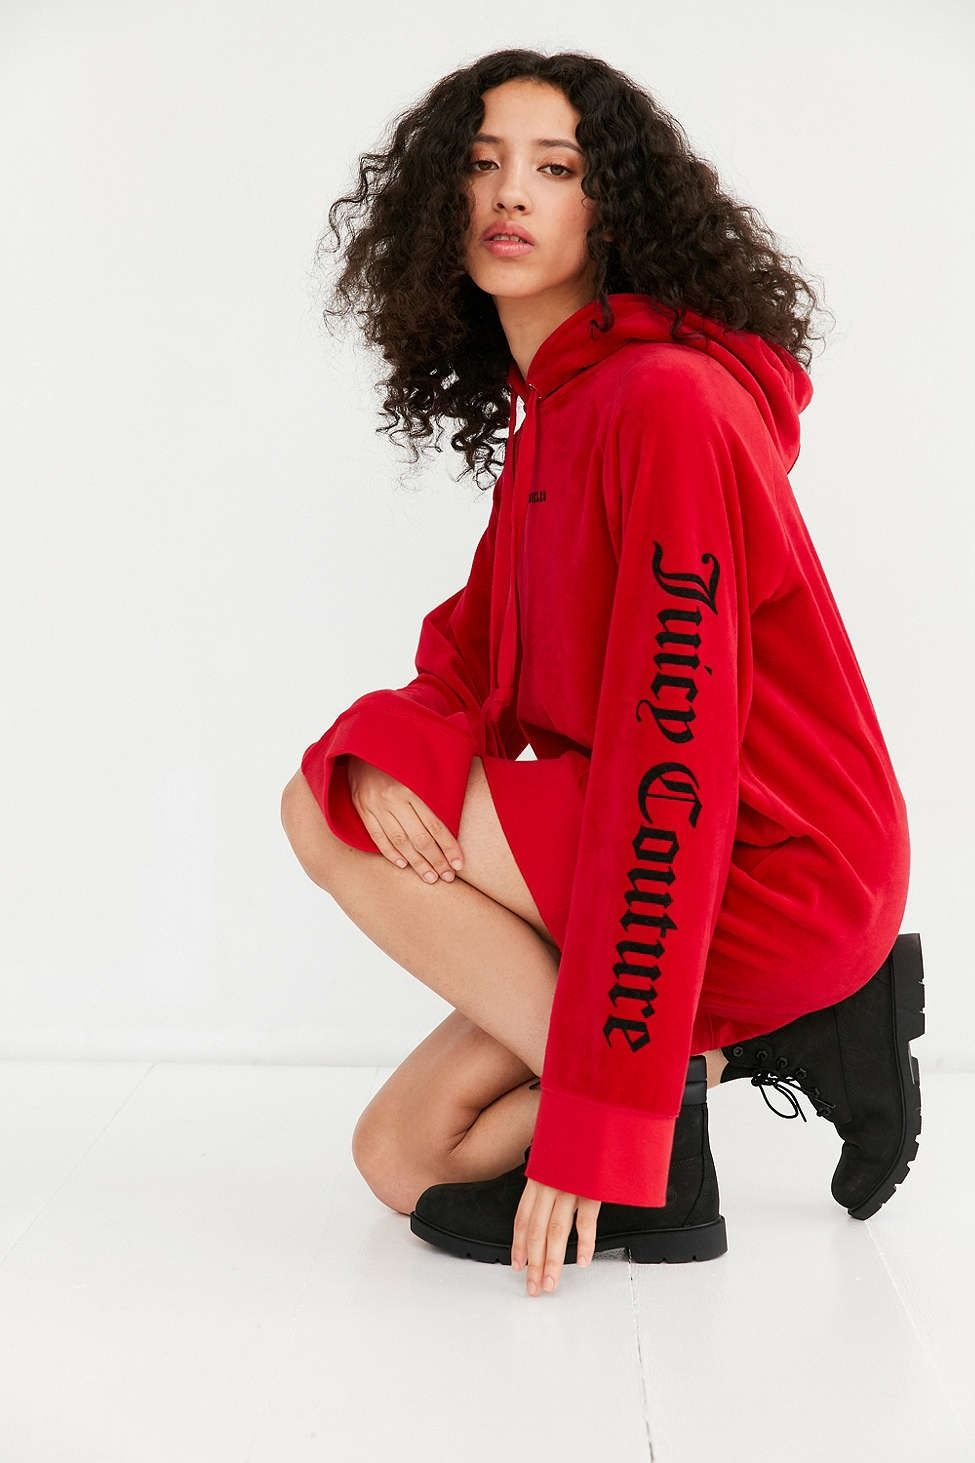 c62b6ab313 Juicy Couture For UO Oversized Velour Hoodie - Urban Outfitters